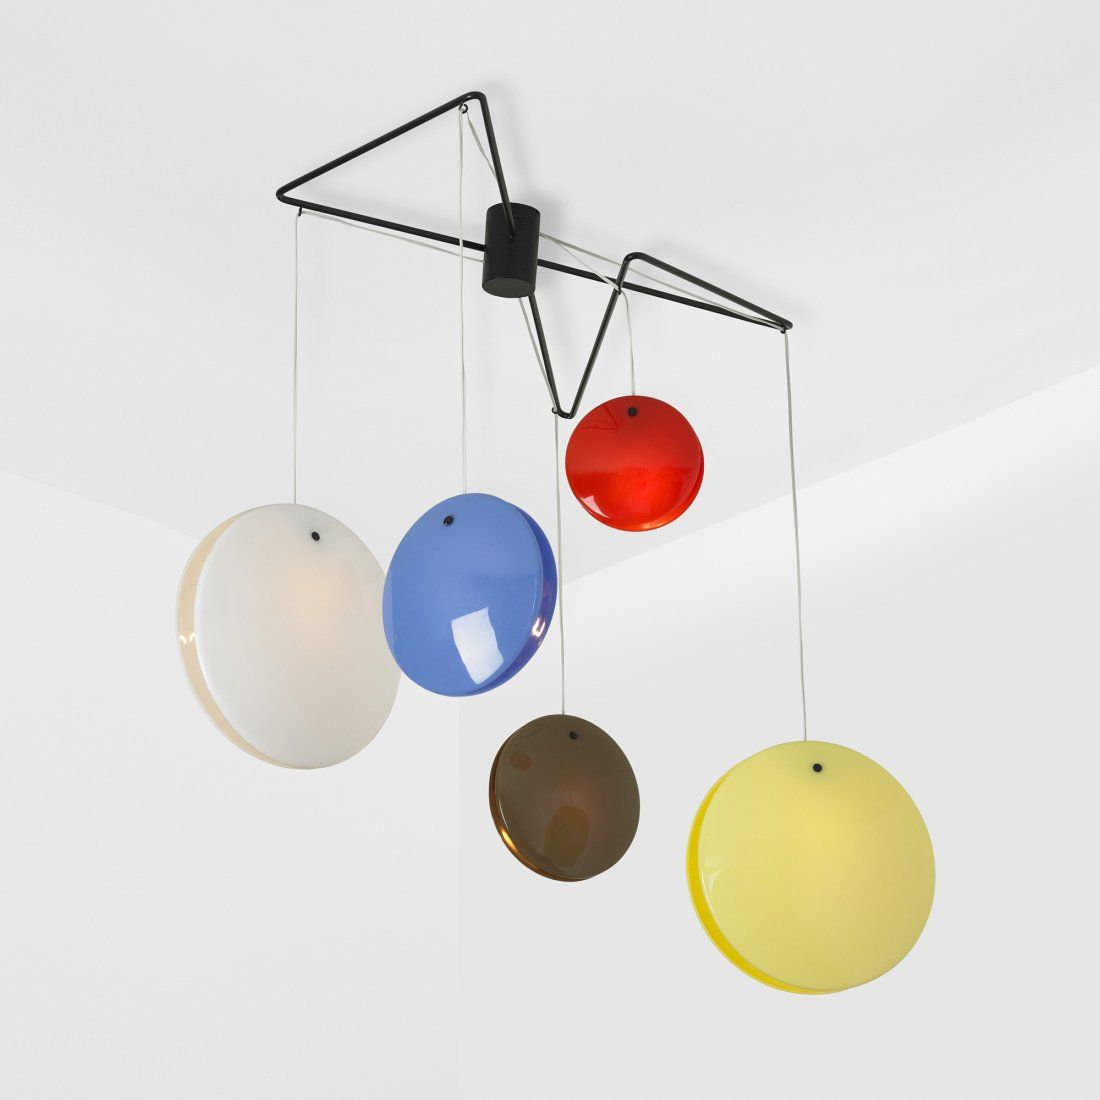 Gino Sarfatti chandelier, model 2072